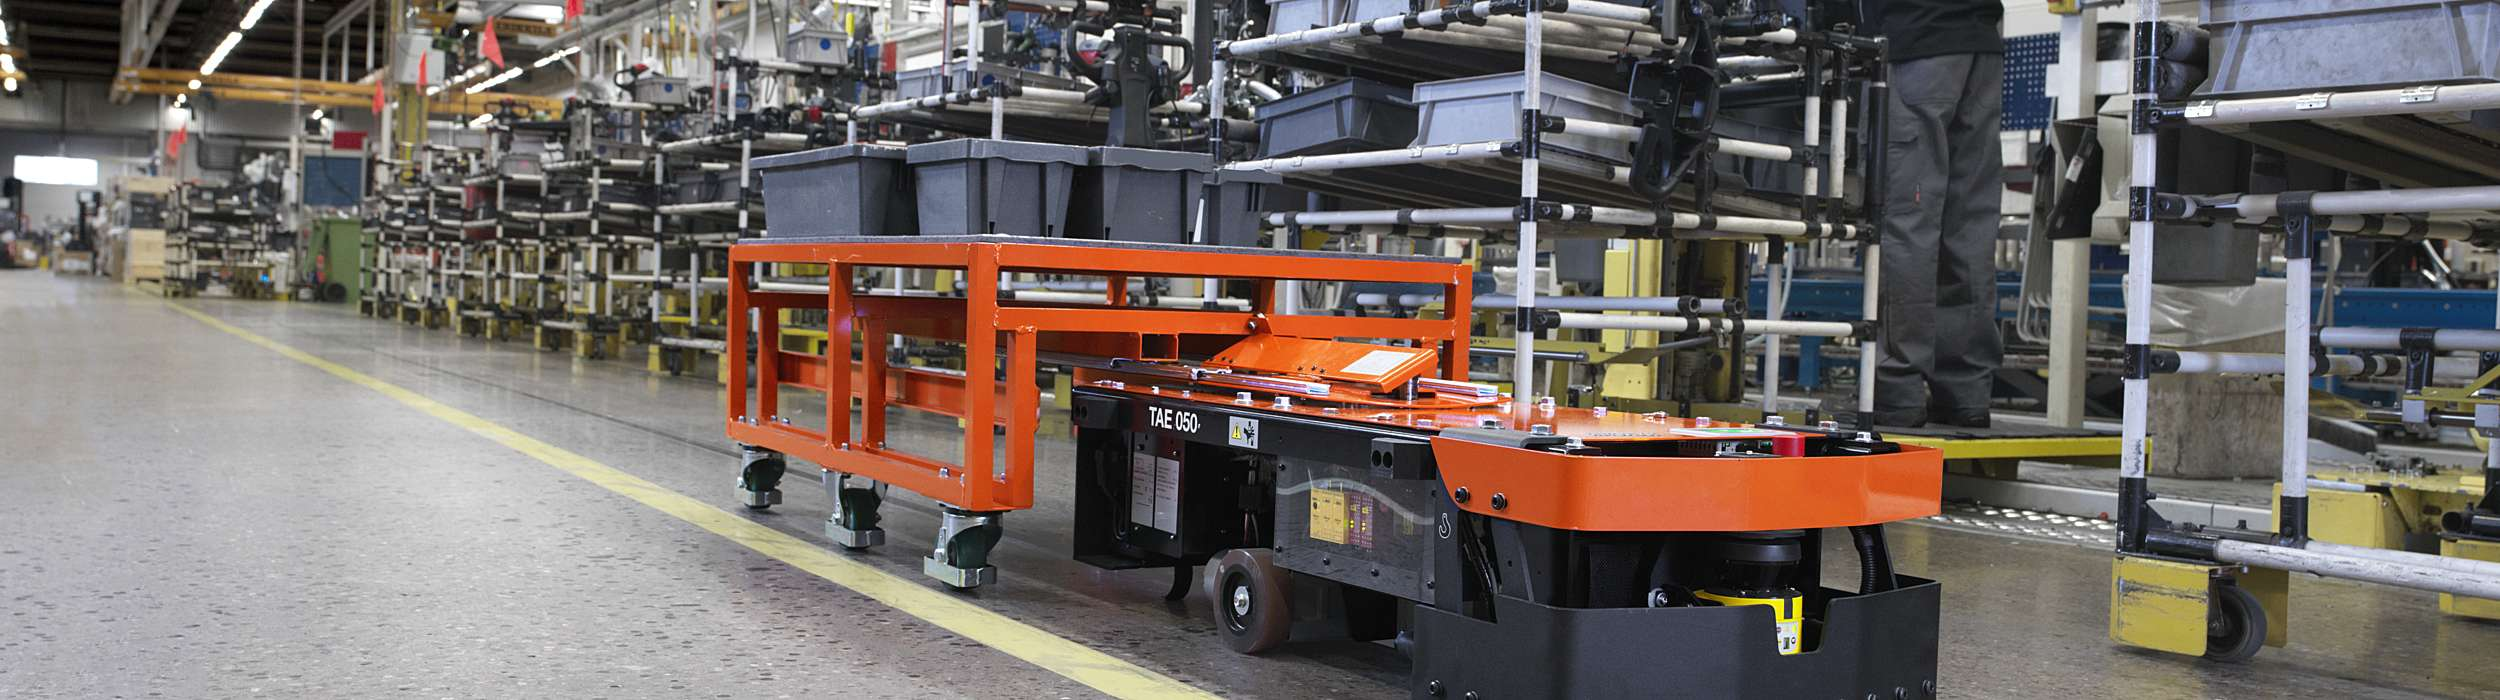 Lean Transportation With The New Automated Guided Cart From Toyota Material  Handling